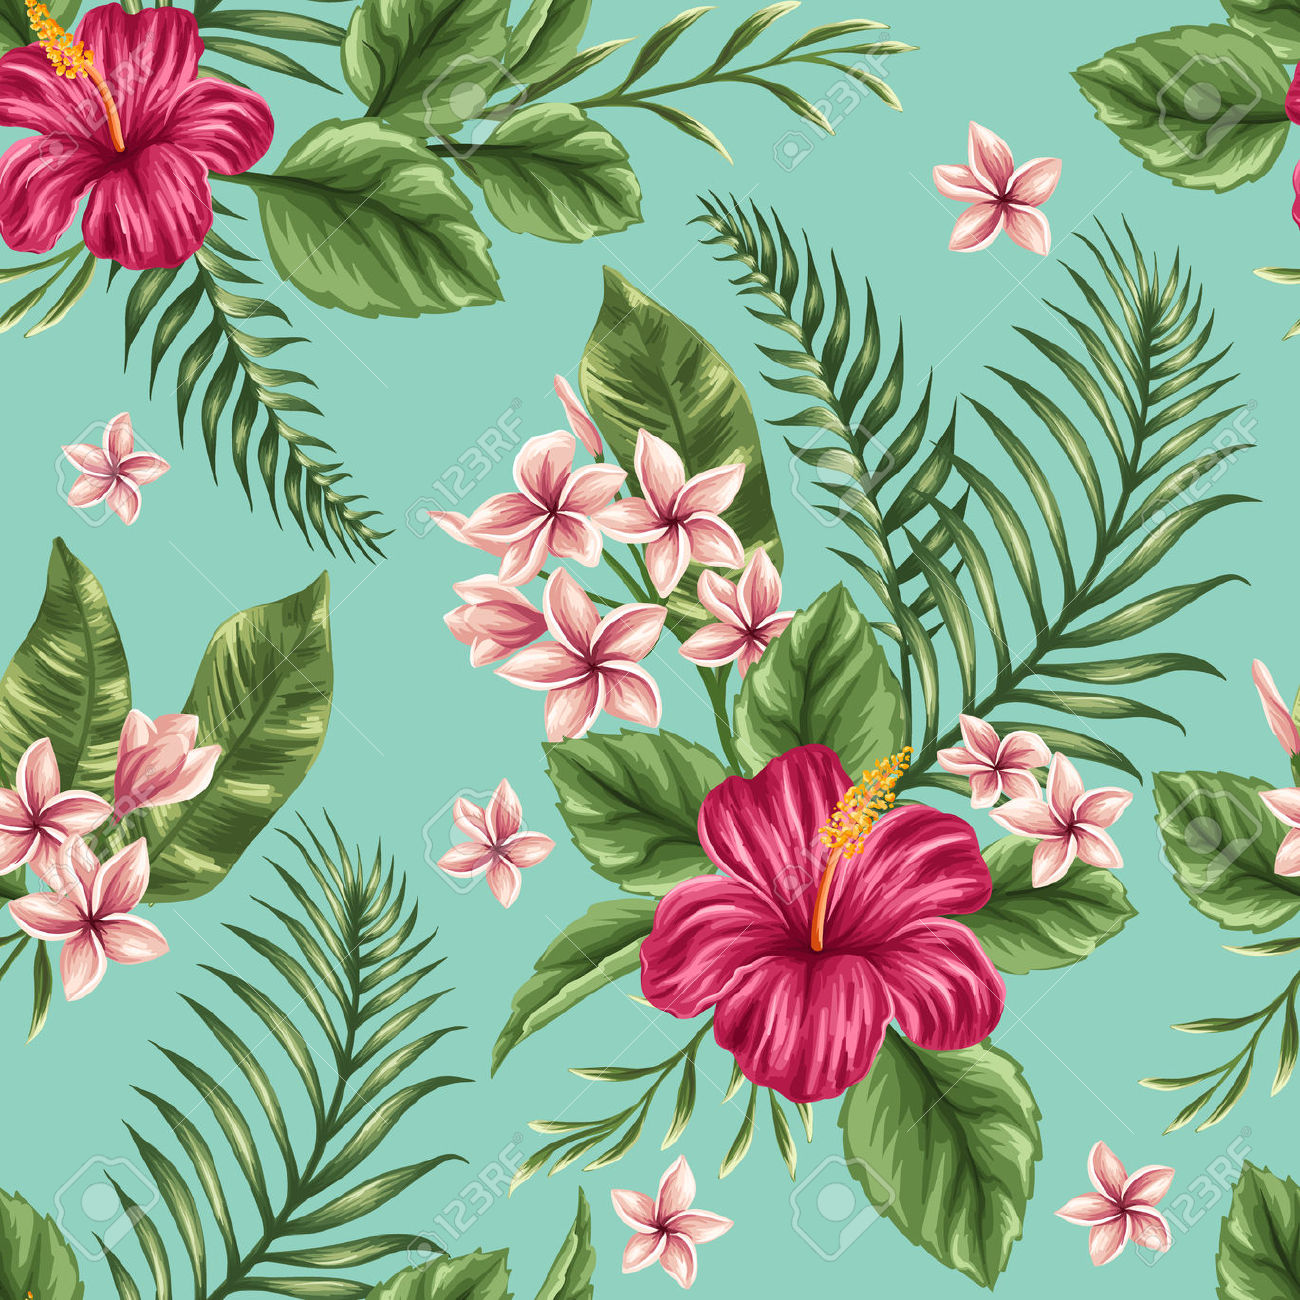 Free pictures of tropical flowers jpg free Tropical Floral Seamless Pattern With Plumeria And Hibiscus ... jpg free